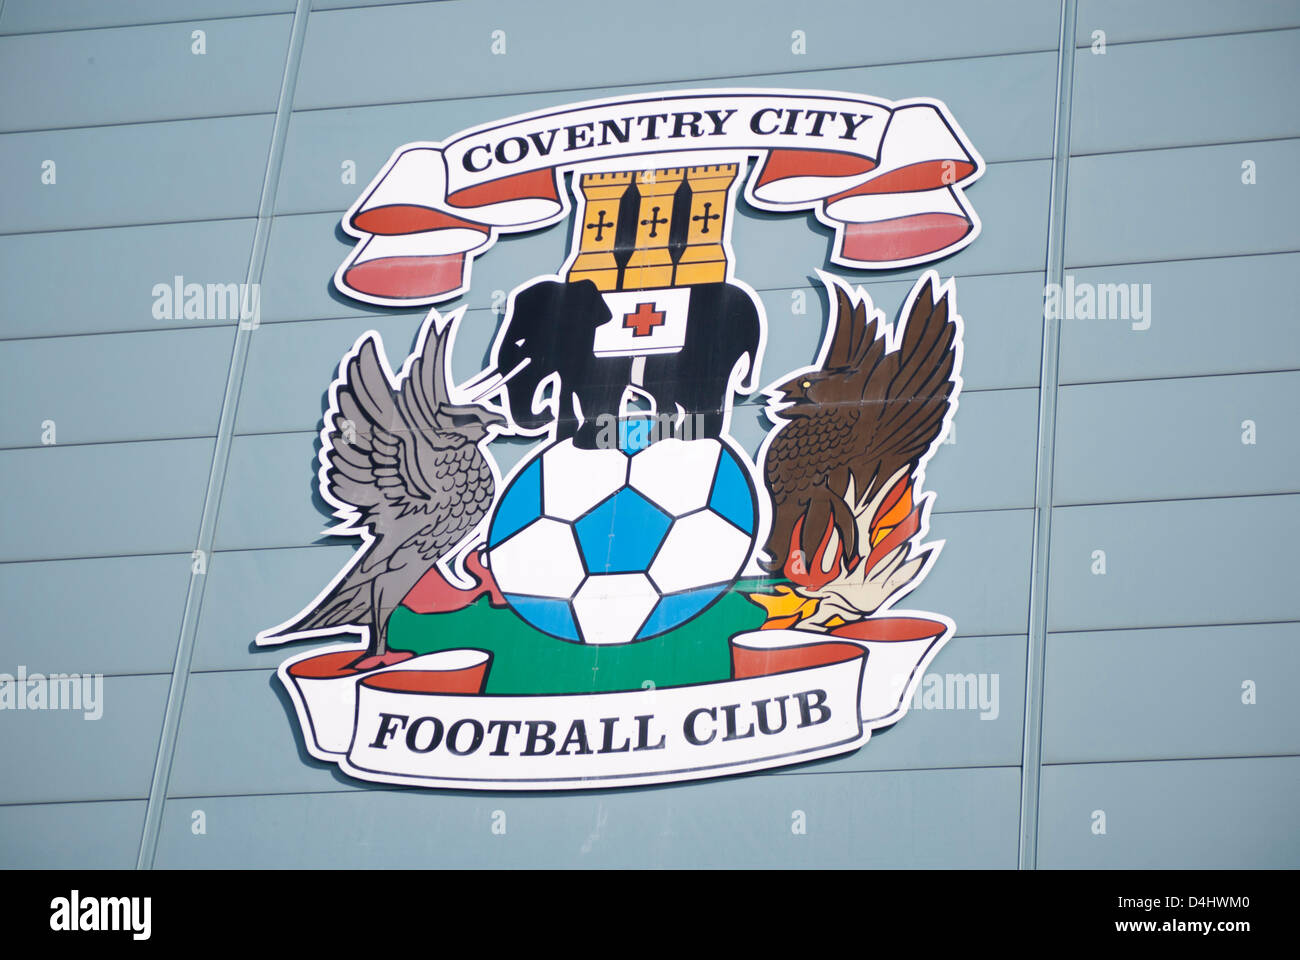 Coventry, UK. 14th March 2013. 14/03/2013 Coventry England UK,Arena Coventry Ltd announce application to the high - Stock Image